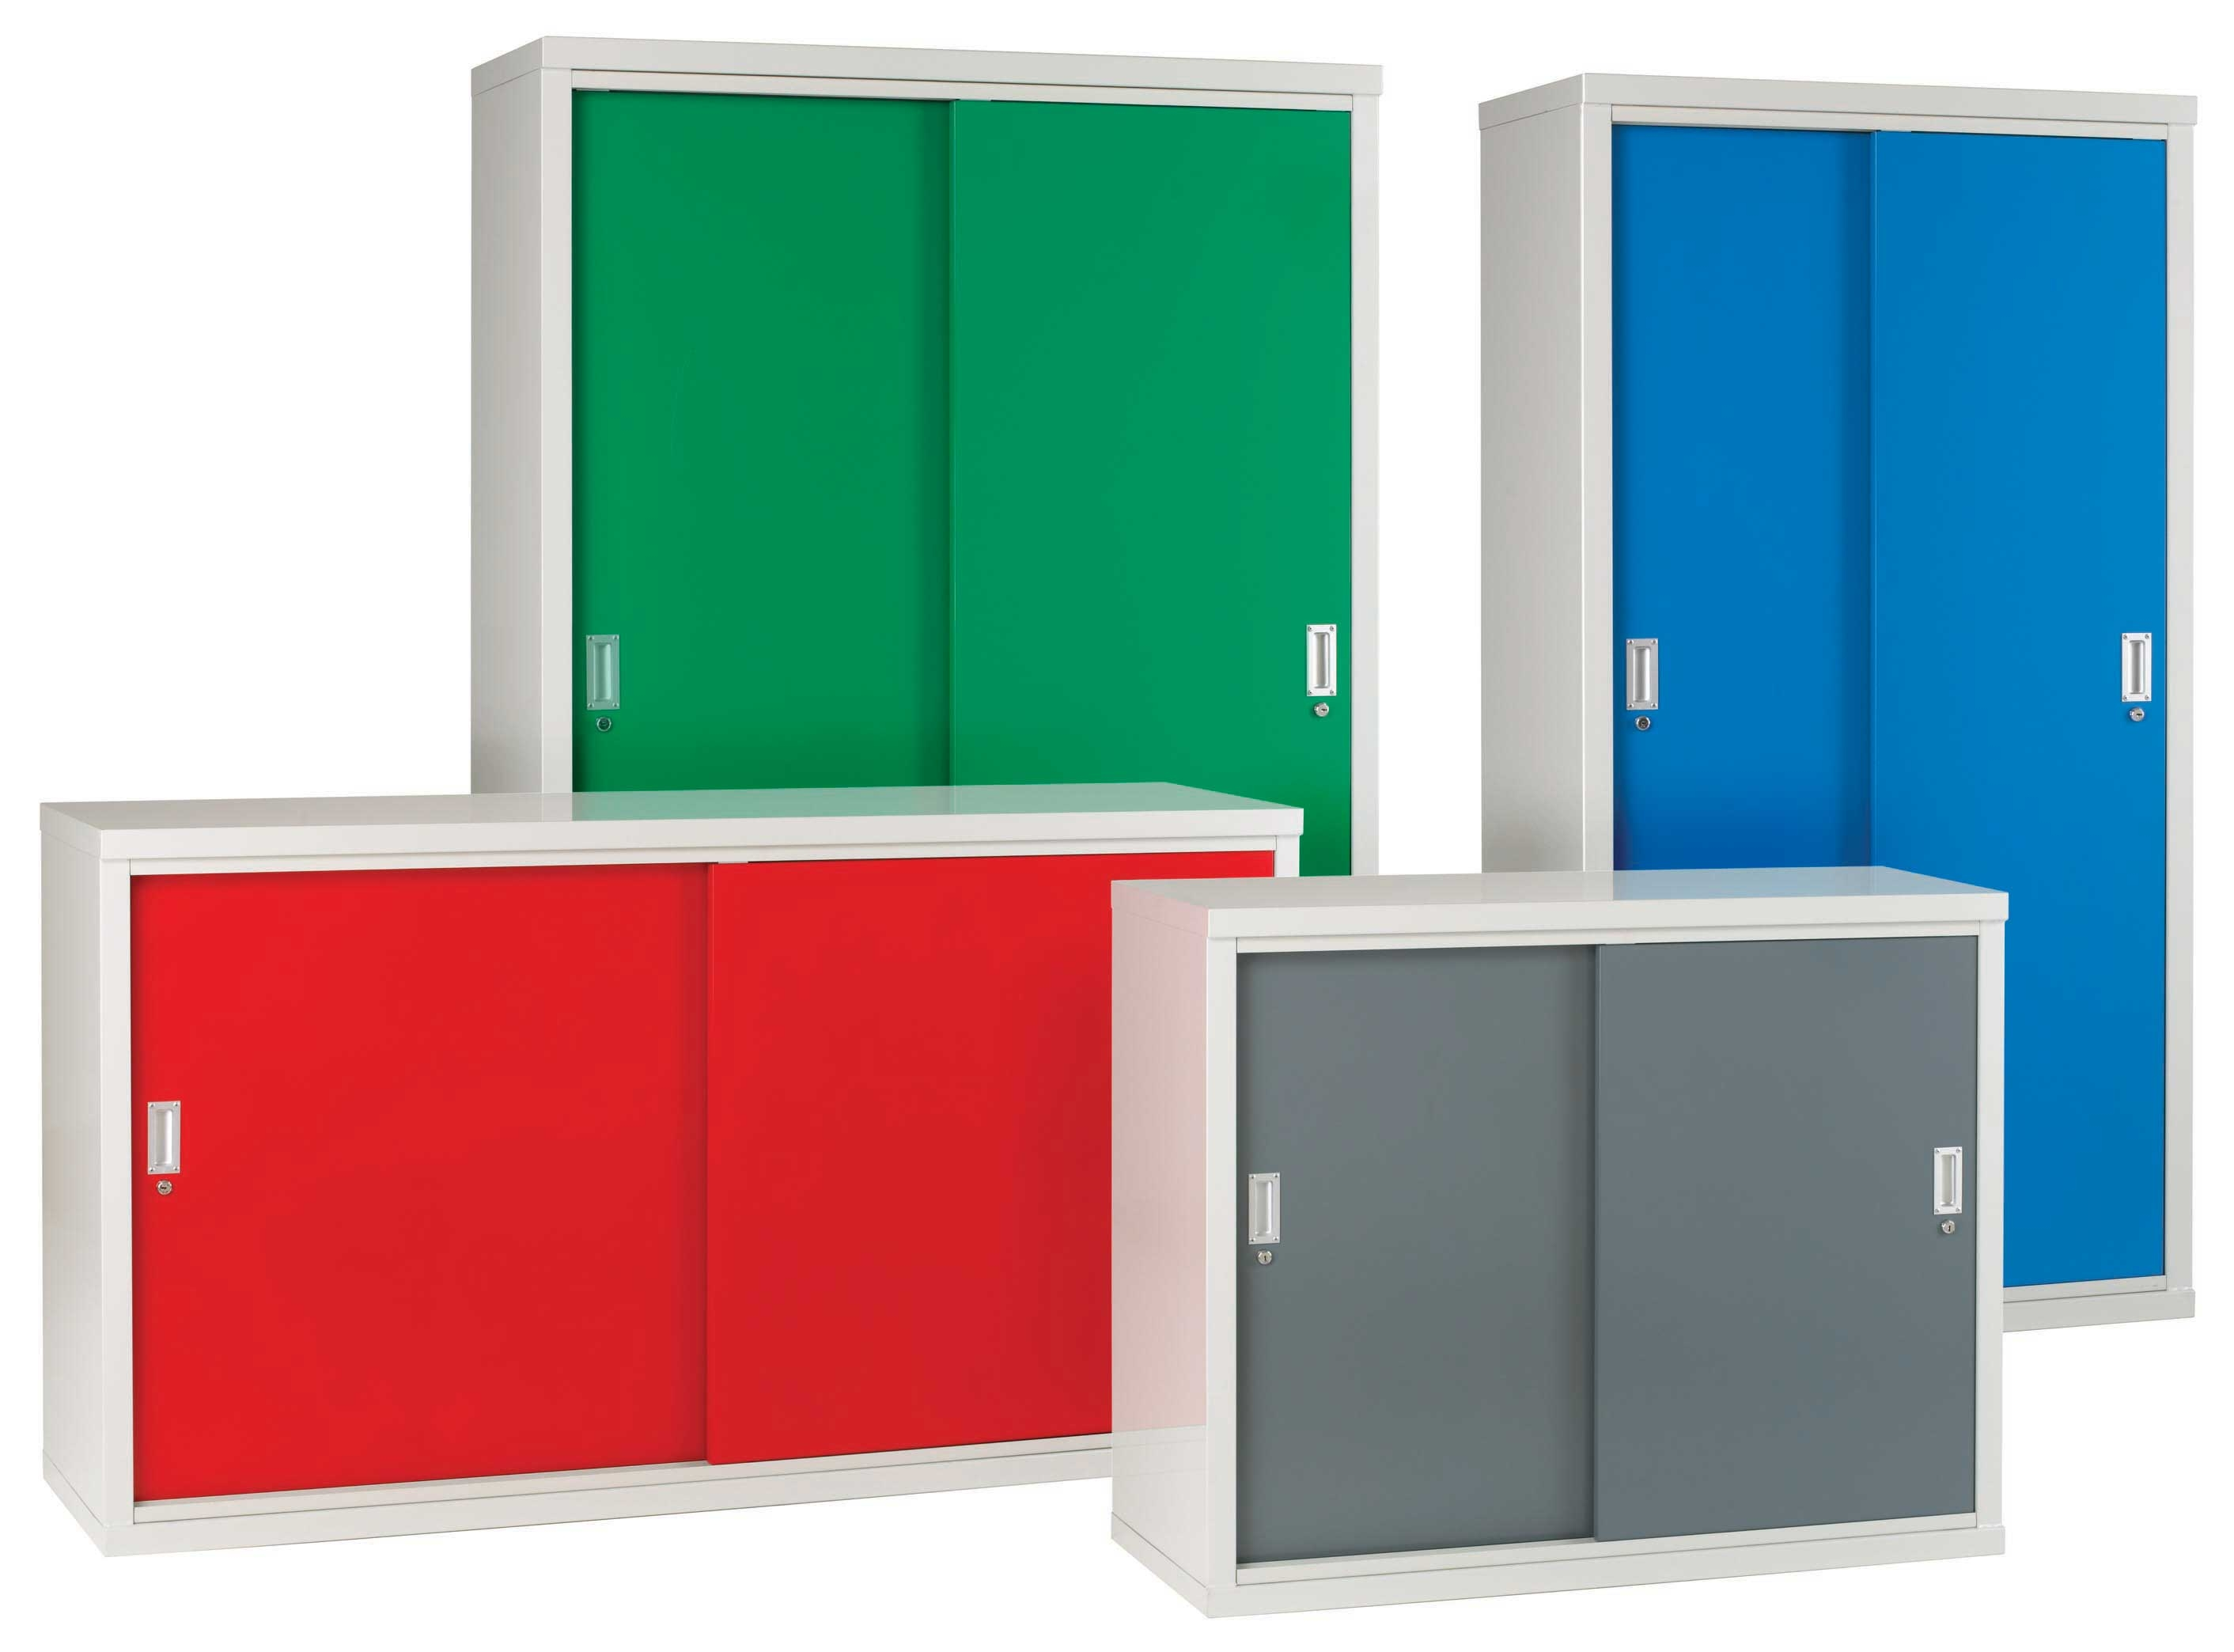 Red Storage Cabinet With Doors